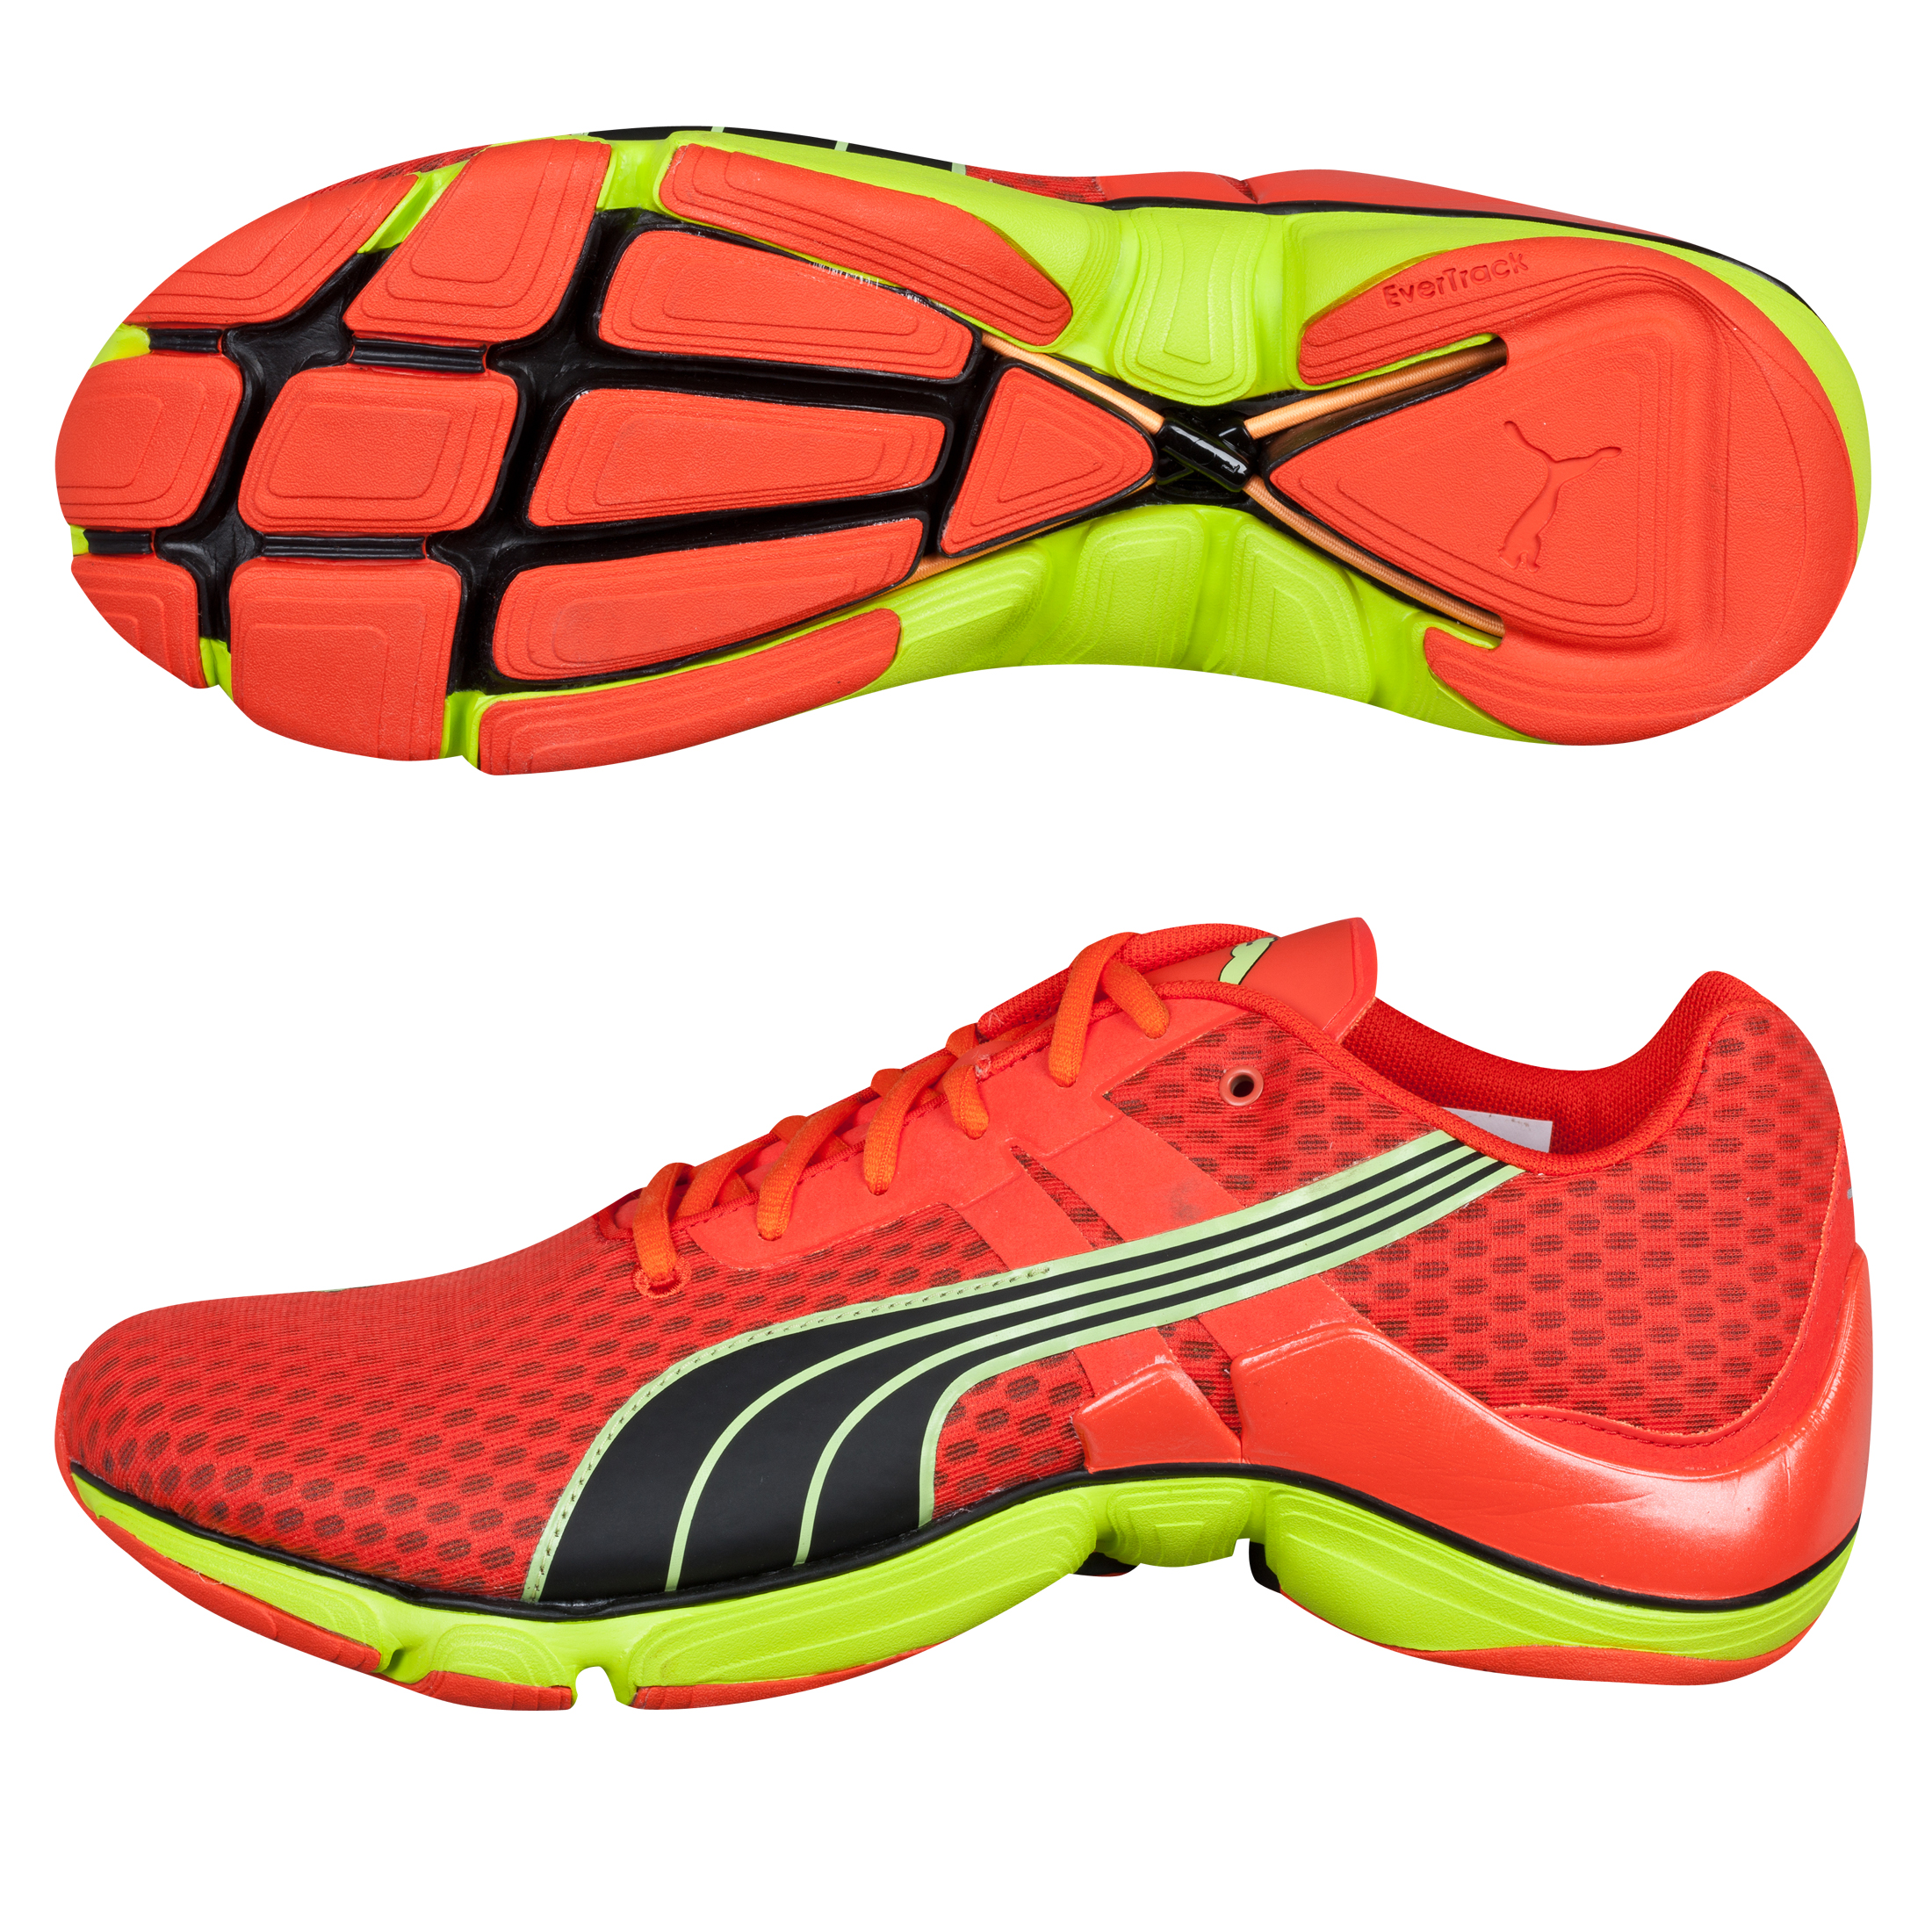 Running Puma Mobium Elite NM Trainer - Cherry Tomato/Lime-Black Red